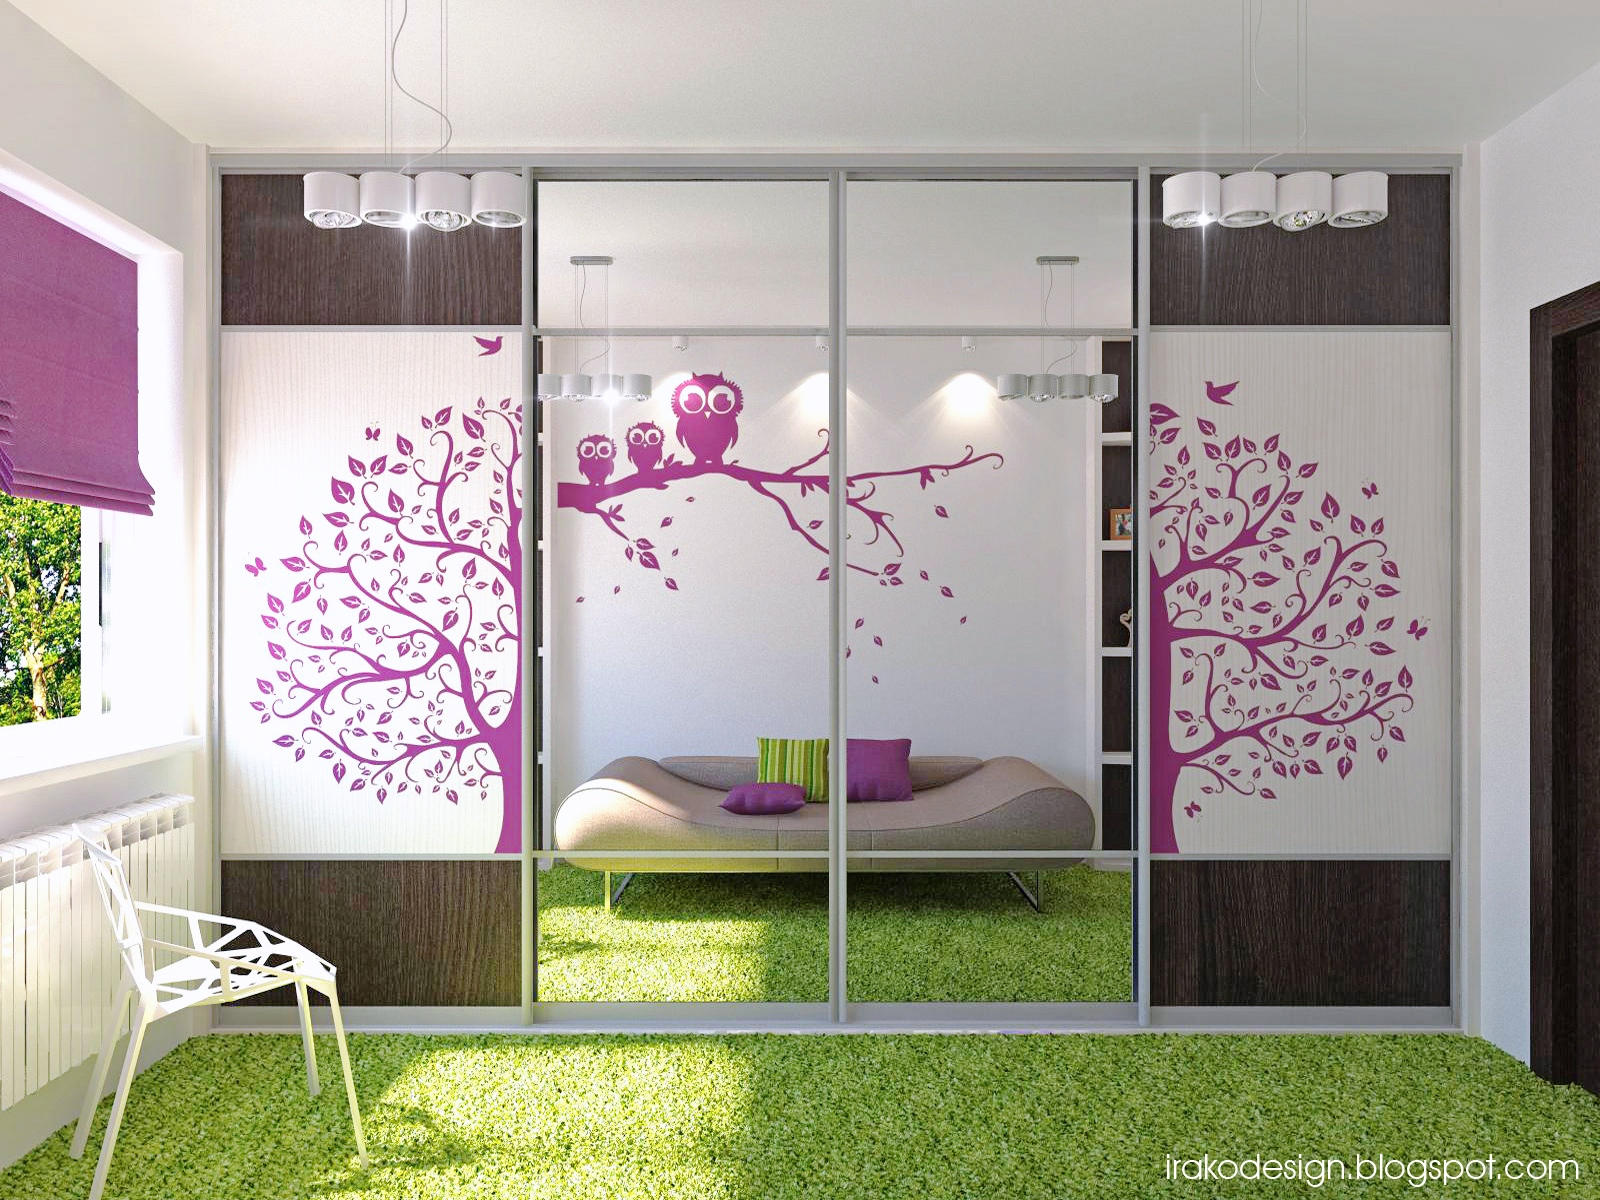 design ideas for teenage girl bedroom - bedroom |